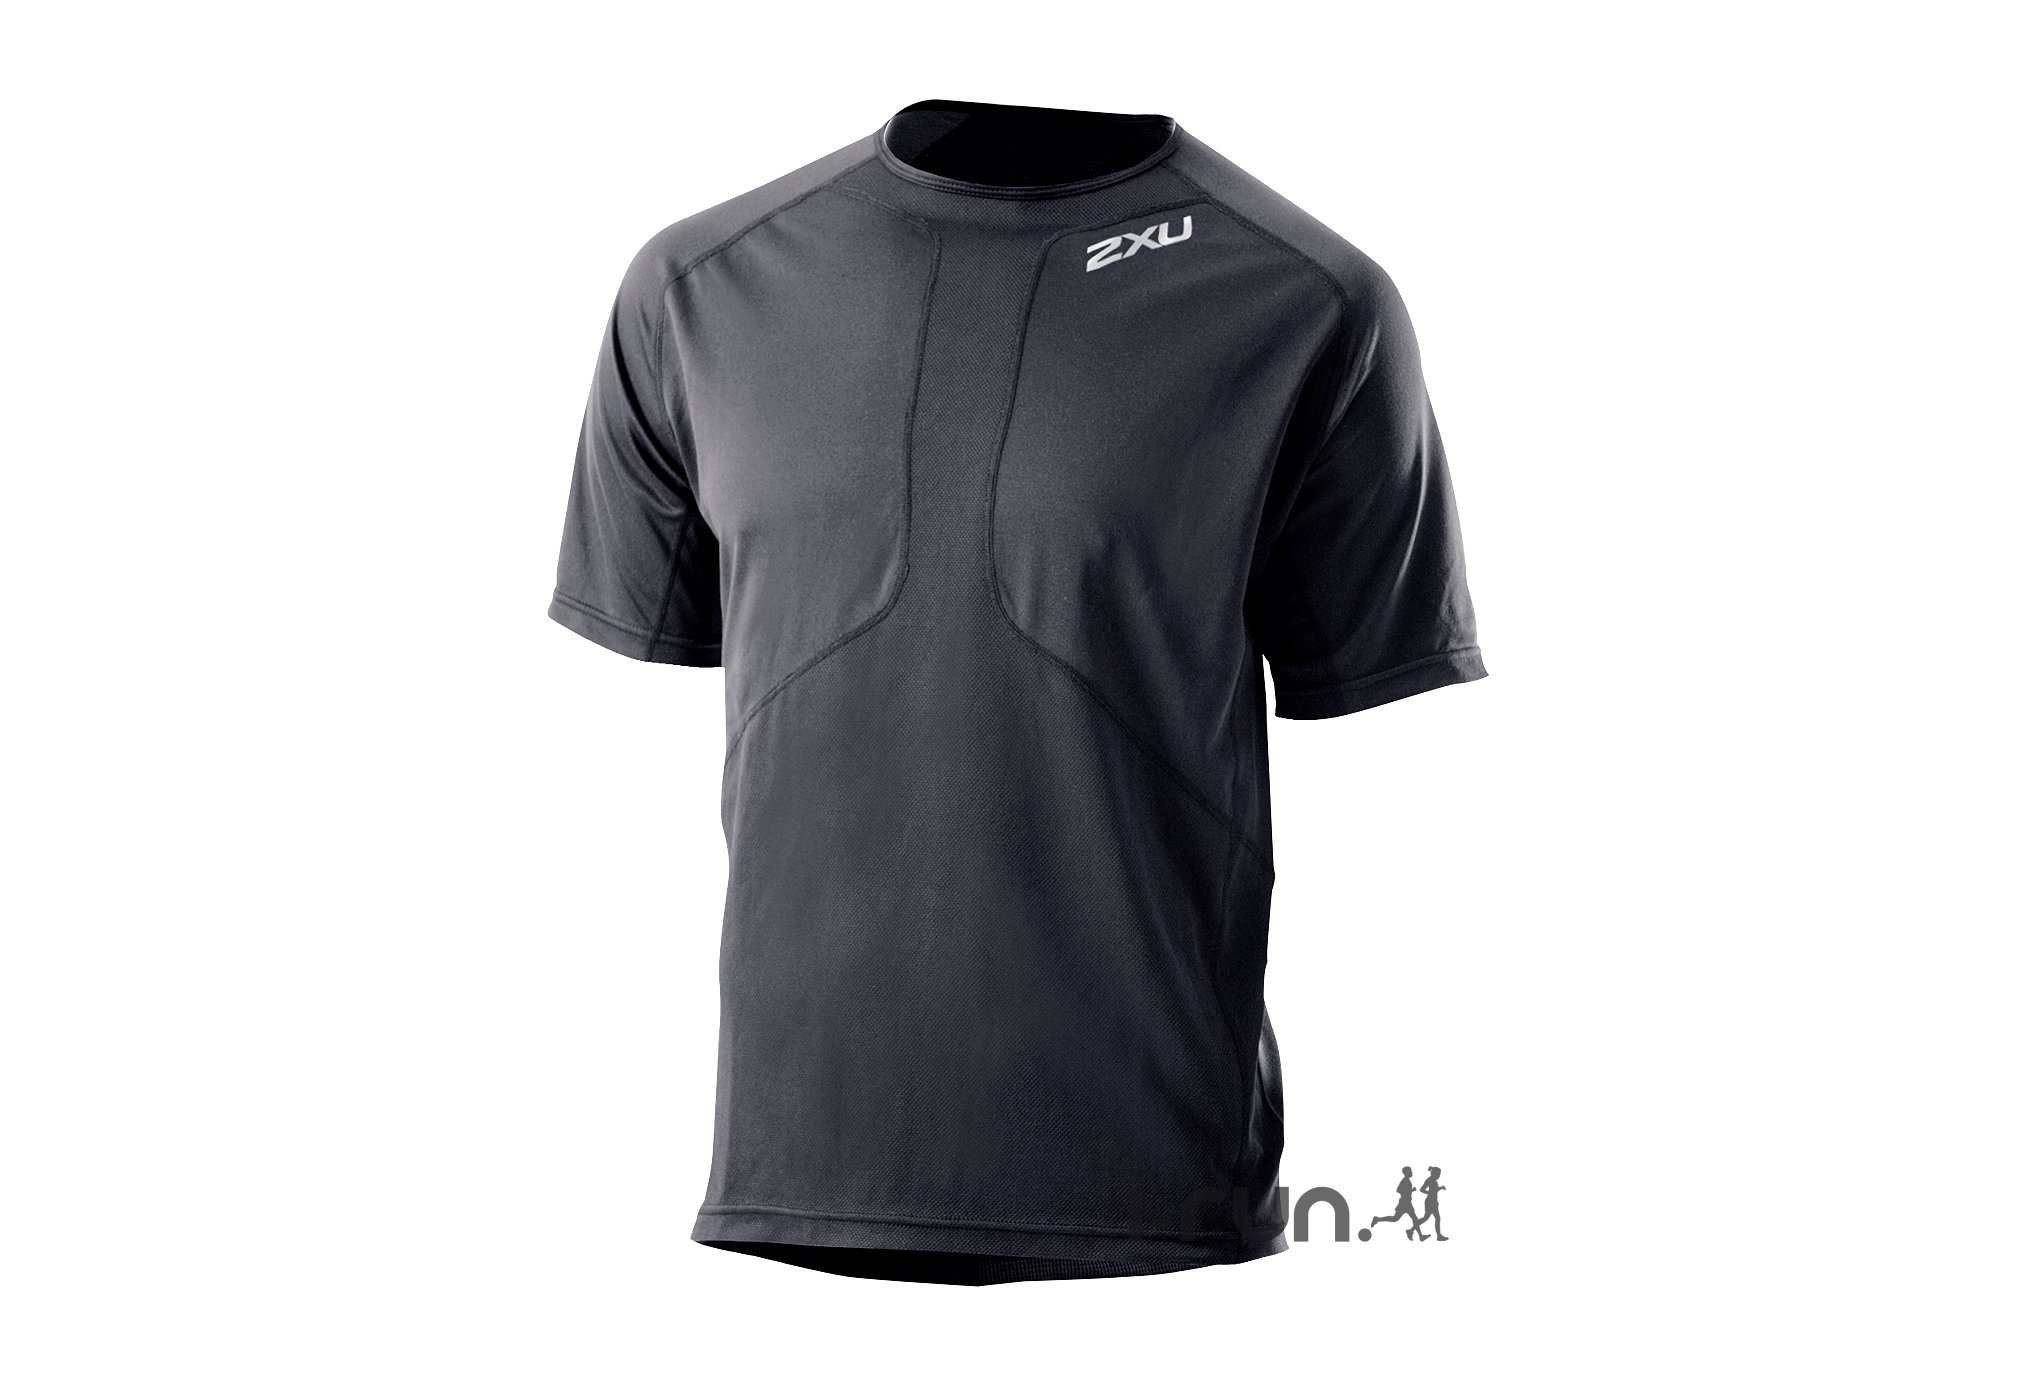 2xu Tee-Shirt s/s comp run m vêtement running homme